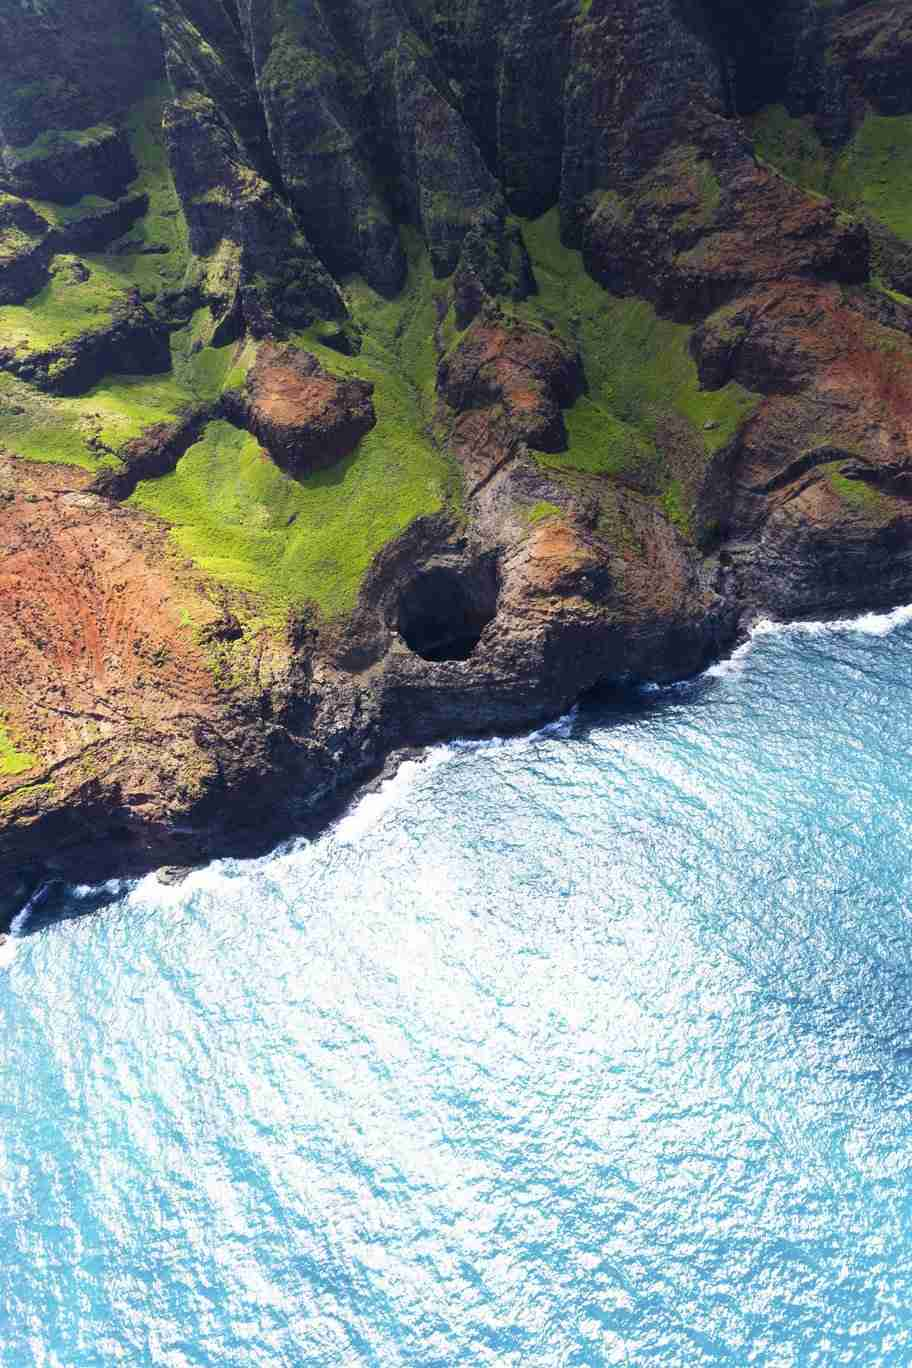 Print of a Hidden Cove along the Na Pali Coast Kauai